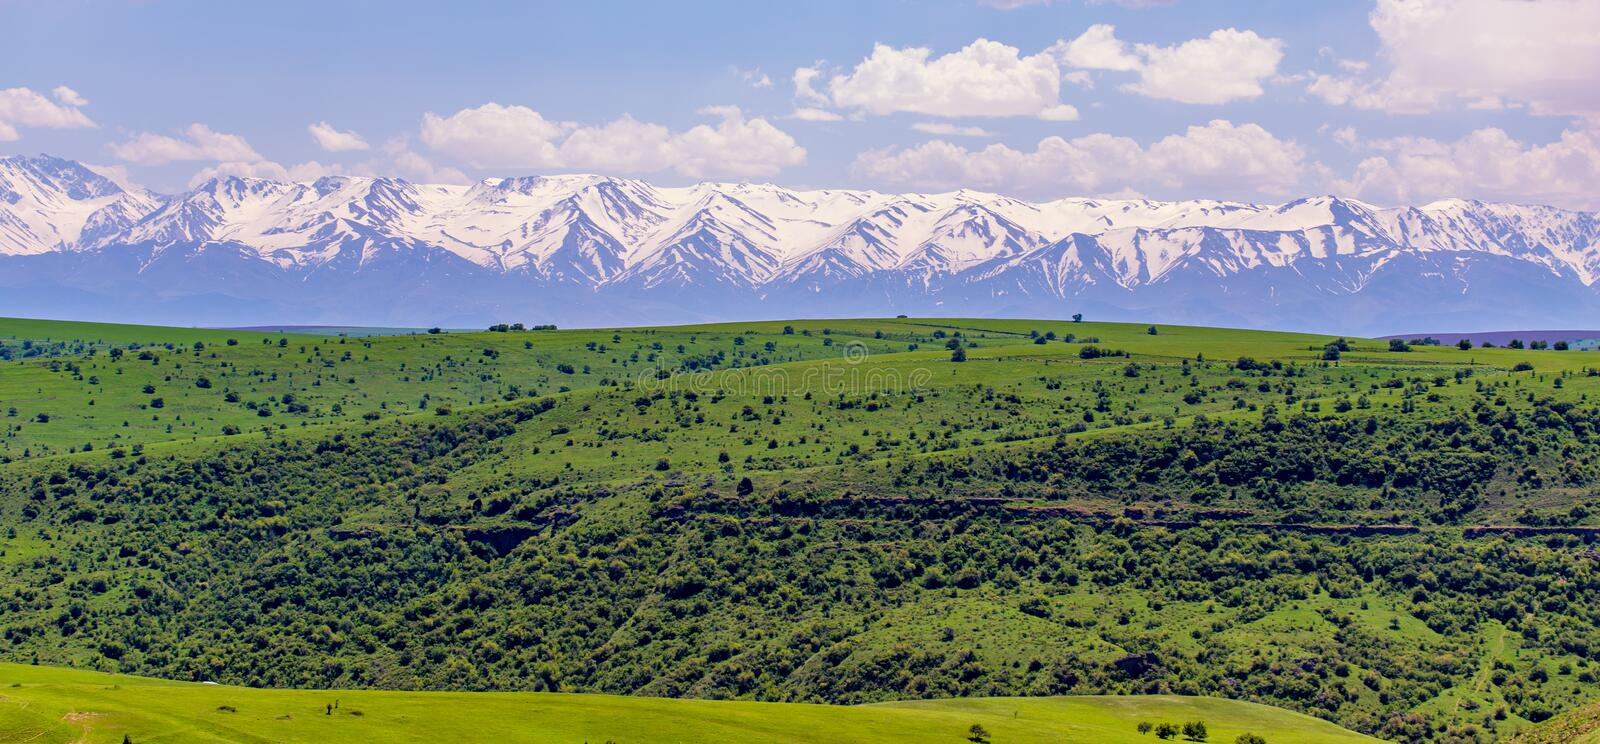 Snowy peaks of mountains in spring in Kazakhstan royalty free stock images